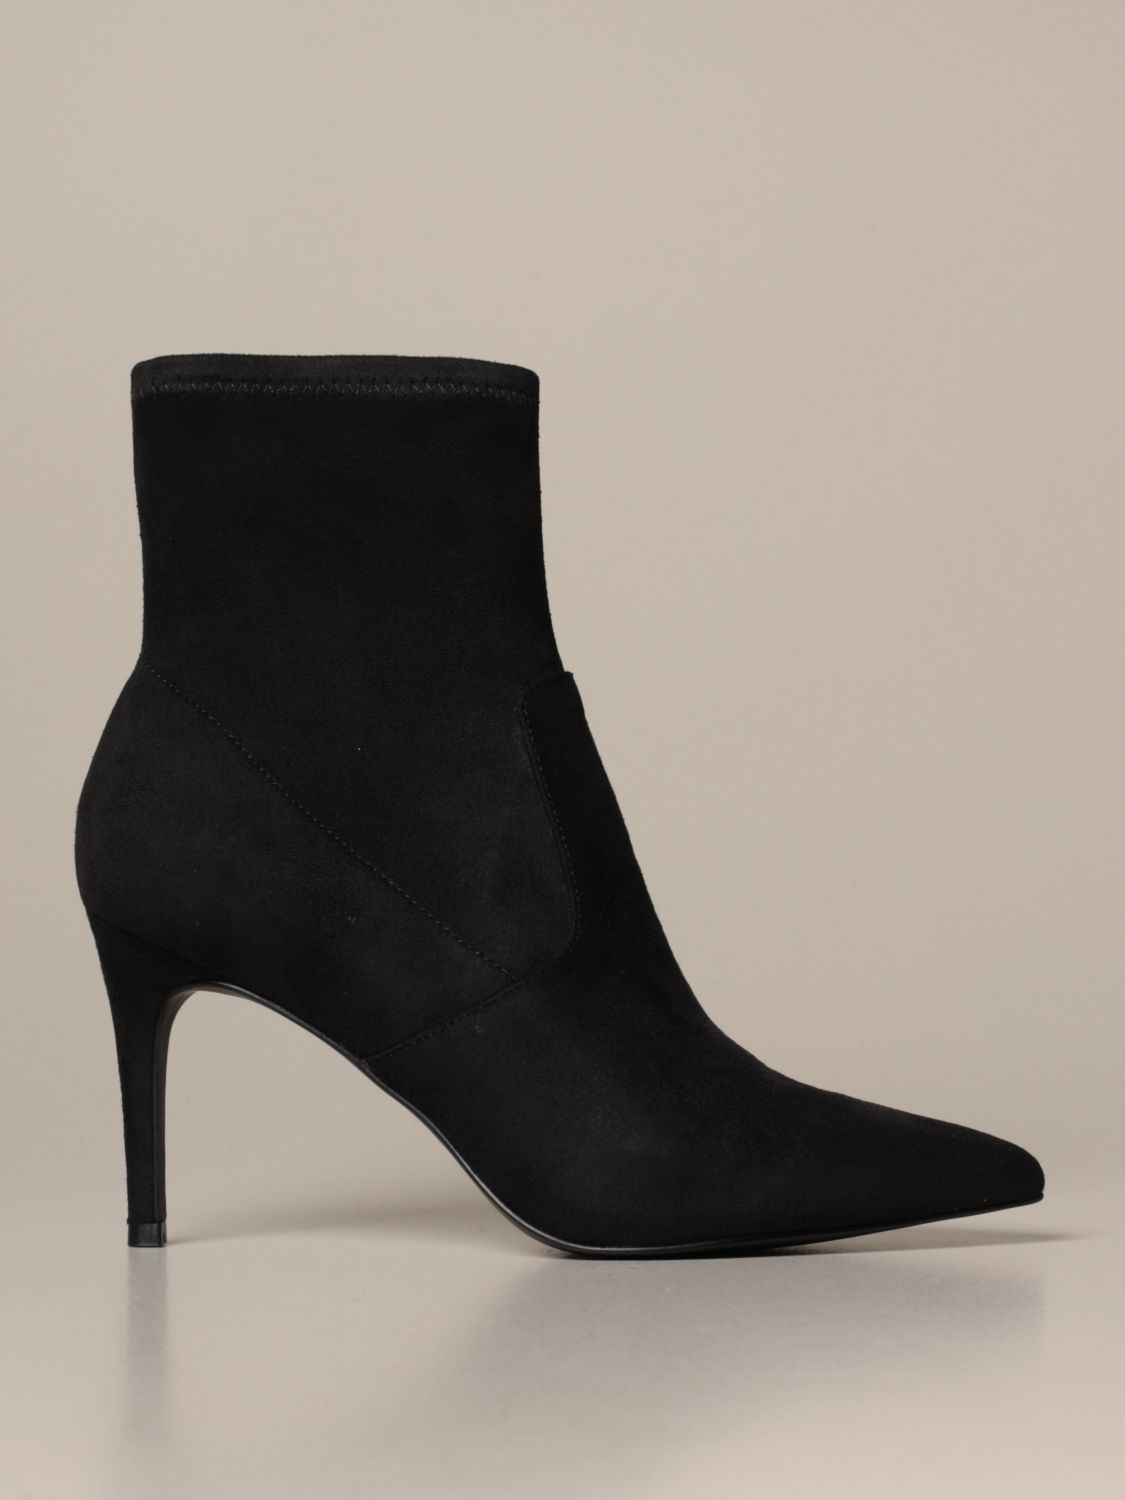 operador Sherlock Holmes gritar  Steve Madden ankle boots in synthetic suede | Heeled Booties Steve Madden  Women Black | Heeled Booties Steve Madden SMSLAVA Giglio EN